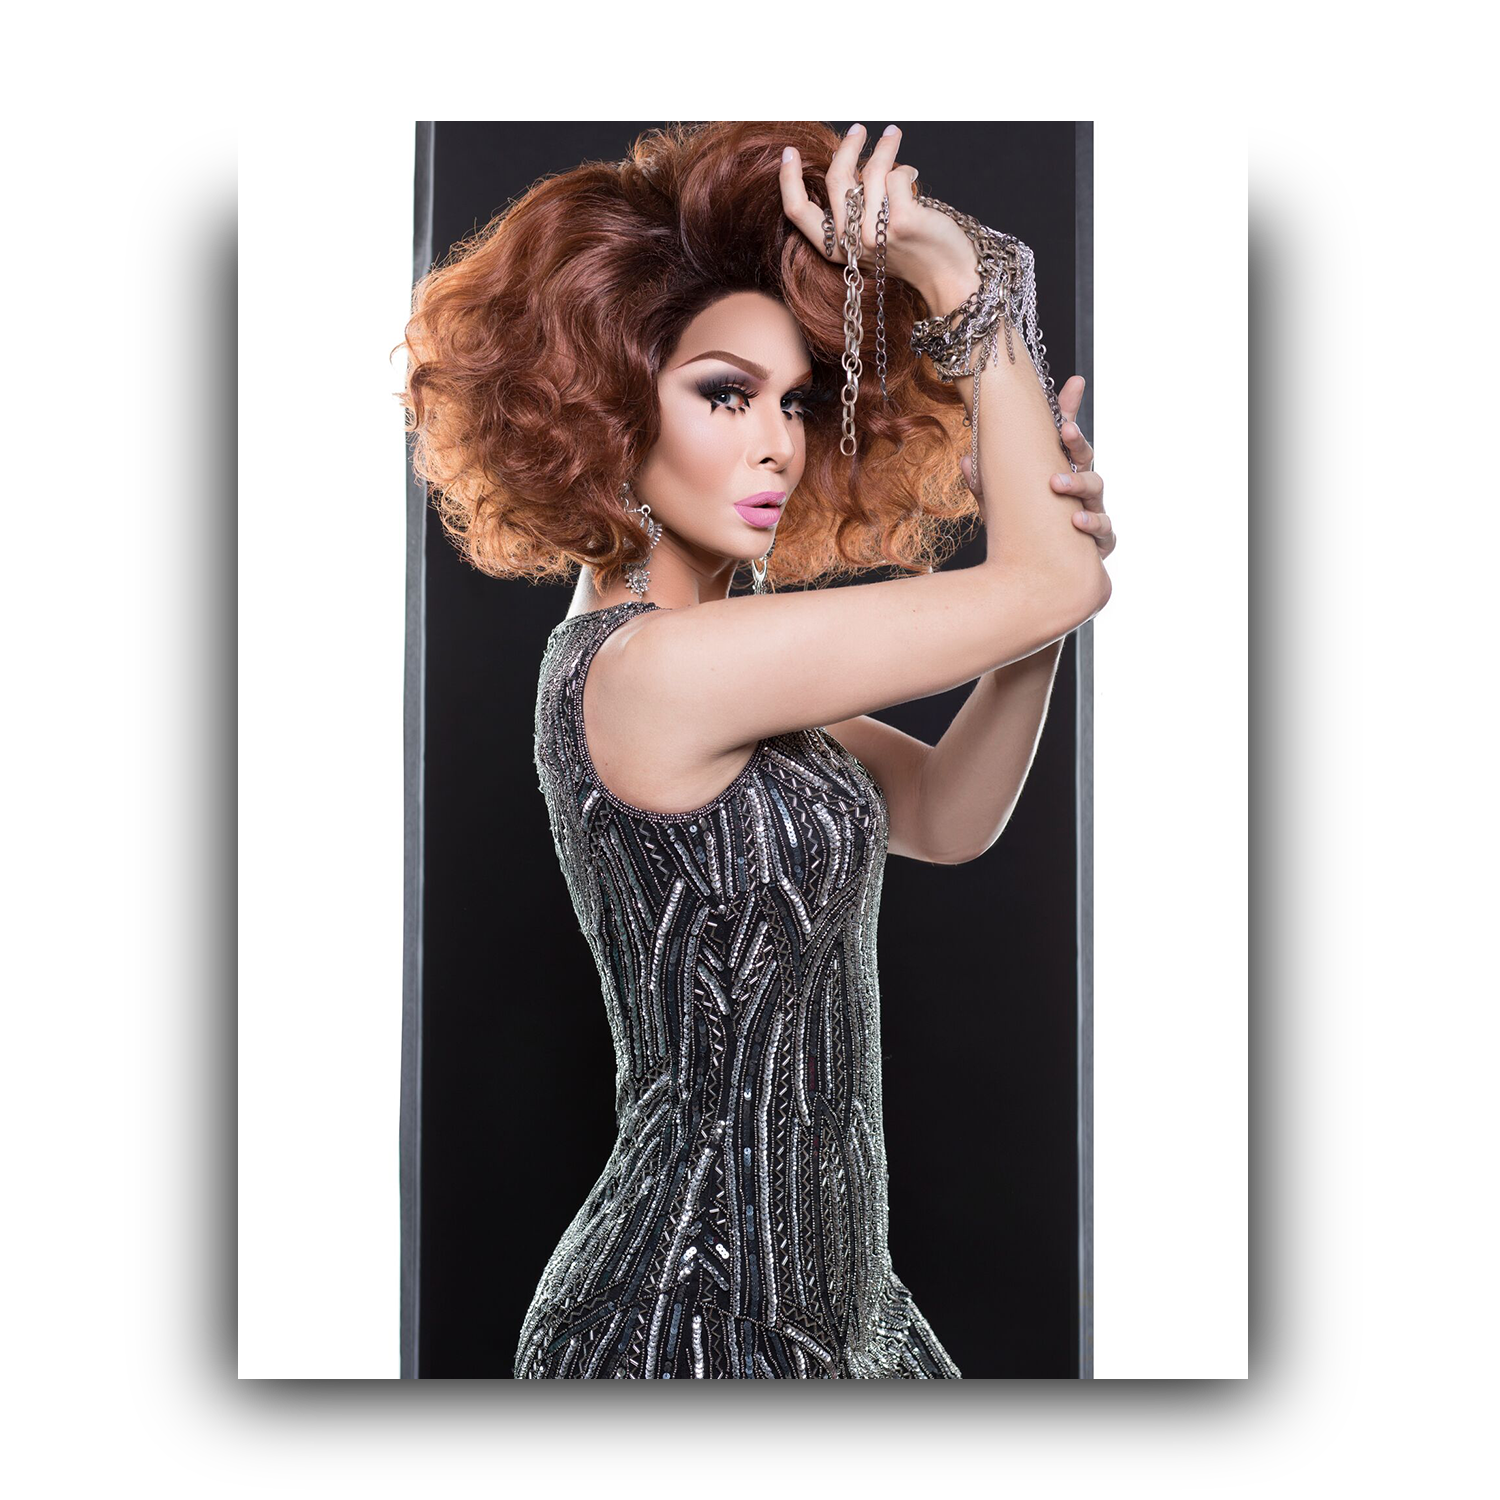 """Drag Photographer Chains Promo (8""""x10"""") UNSIGNED, Summer 2017 Collection"""